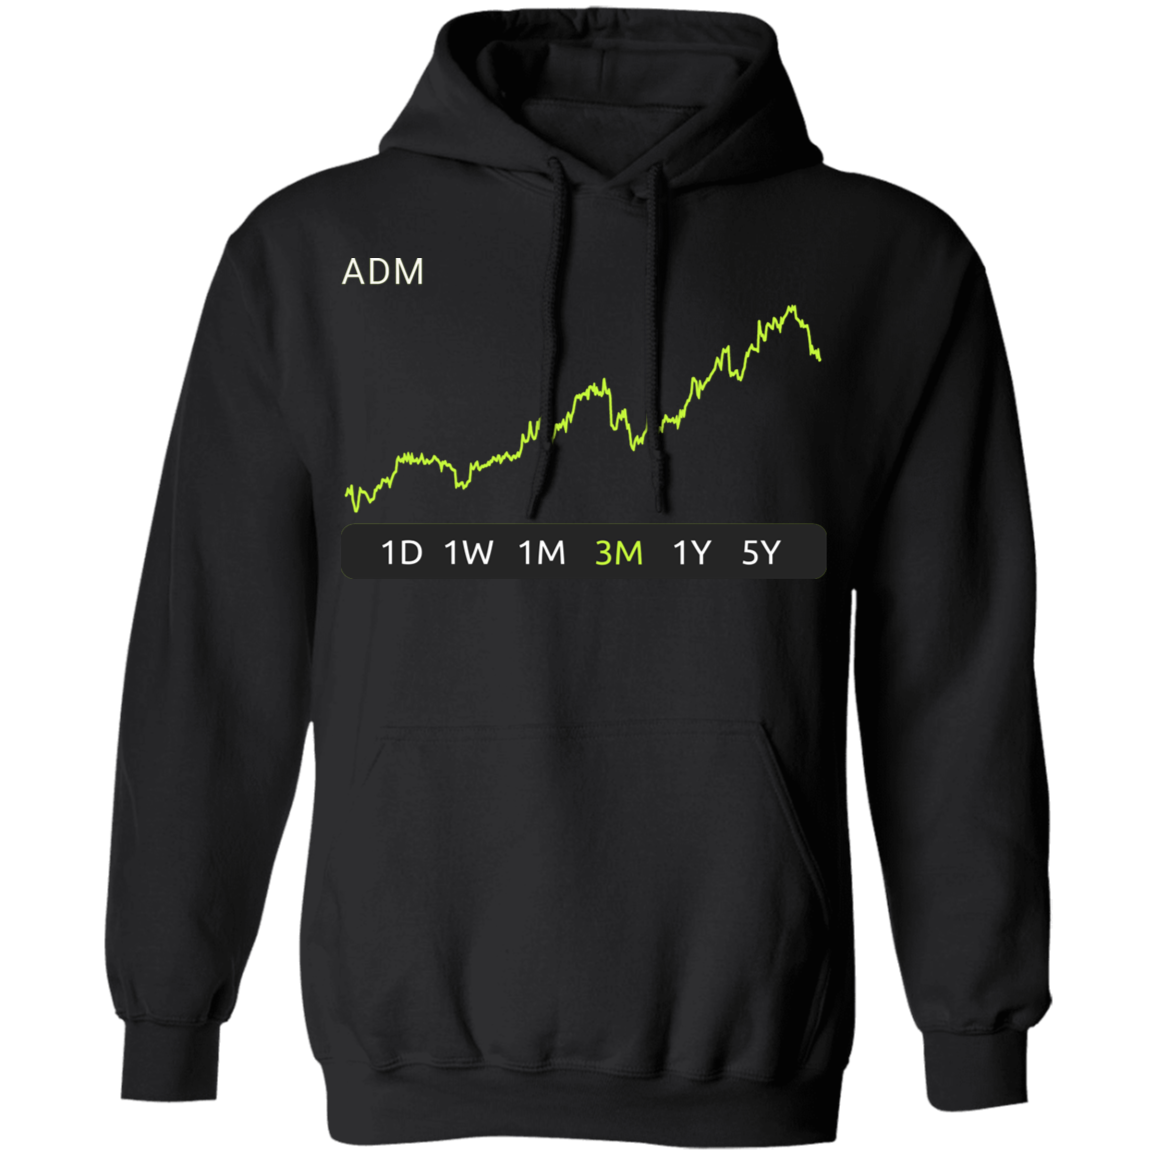 ADM Stock 3m Pullover Hoodie